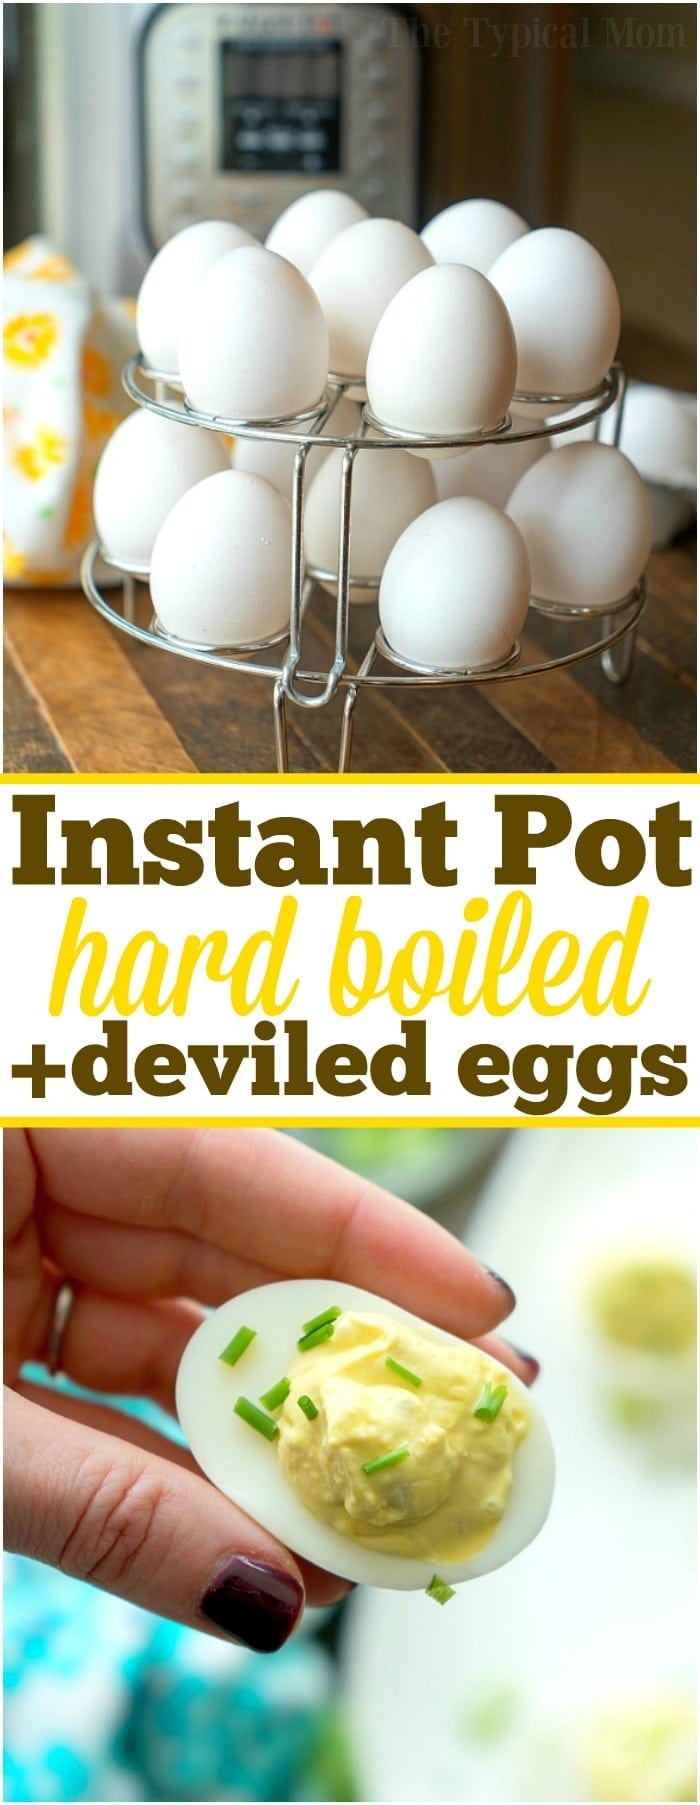 This is how you make Instant Pot hard boiled eggs in bulk and the secrets to the best deviled eggs in town. How long to cook eggs in your pressure cooker to get the perfect yolk for your favorite appetizer and the best hard boiled eggs to snack on too. Tips and tricks on how we do it. #instantpot #pressurecooker #hardboiledeggs #boiled #eggs #perfect #instructions #time #timing #deviled